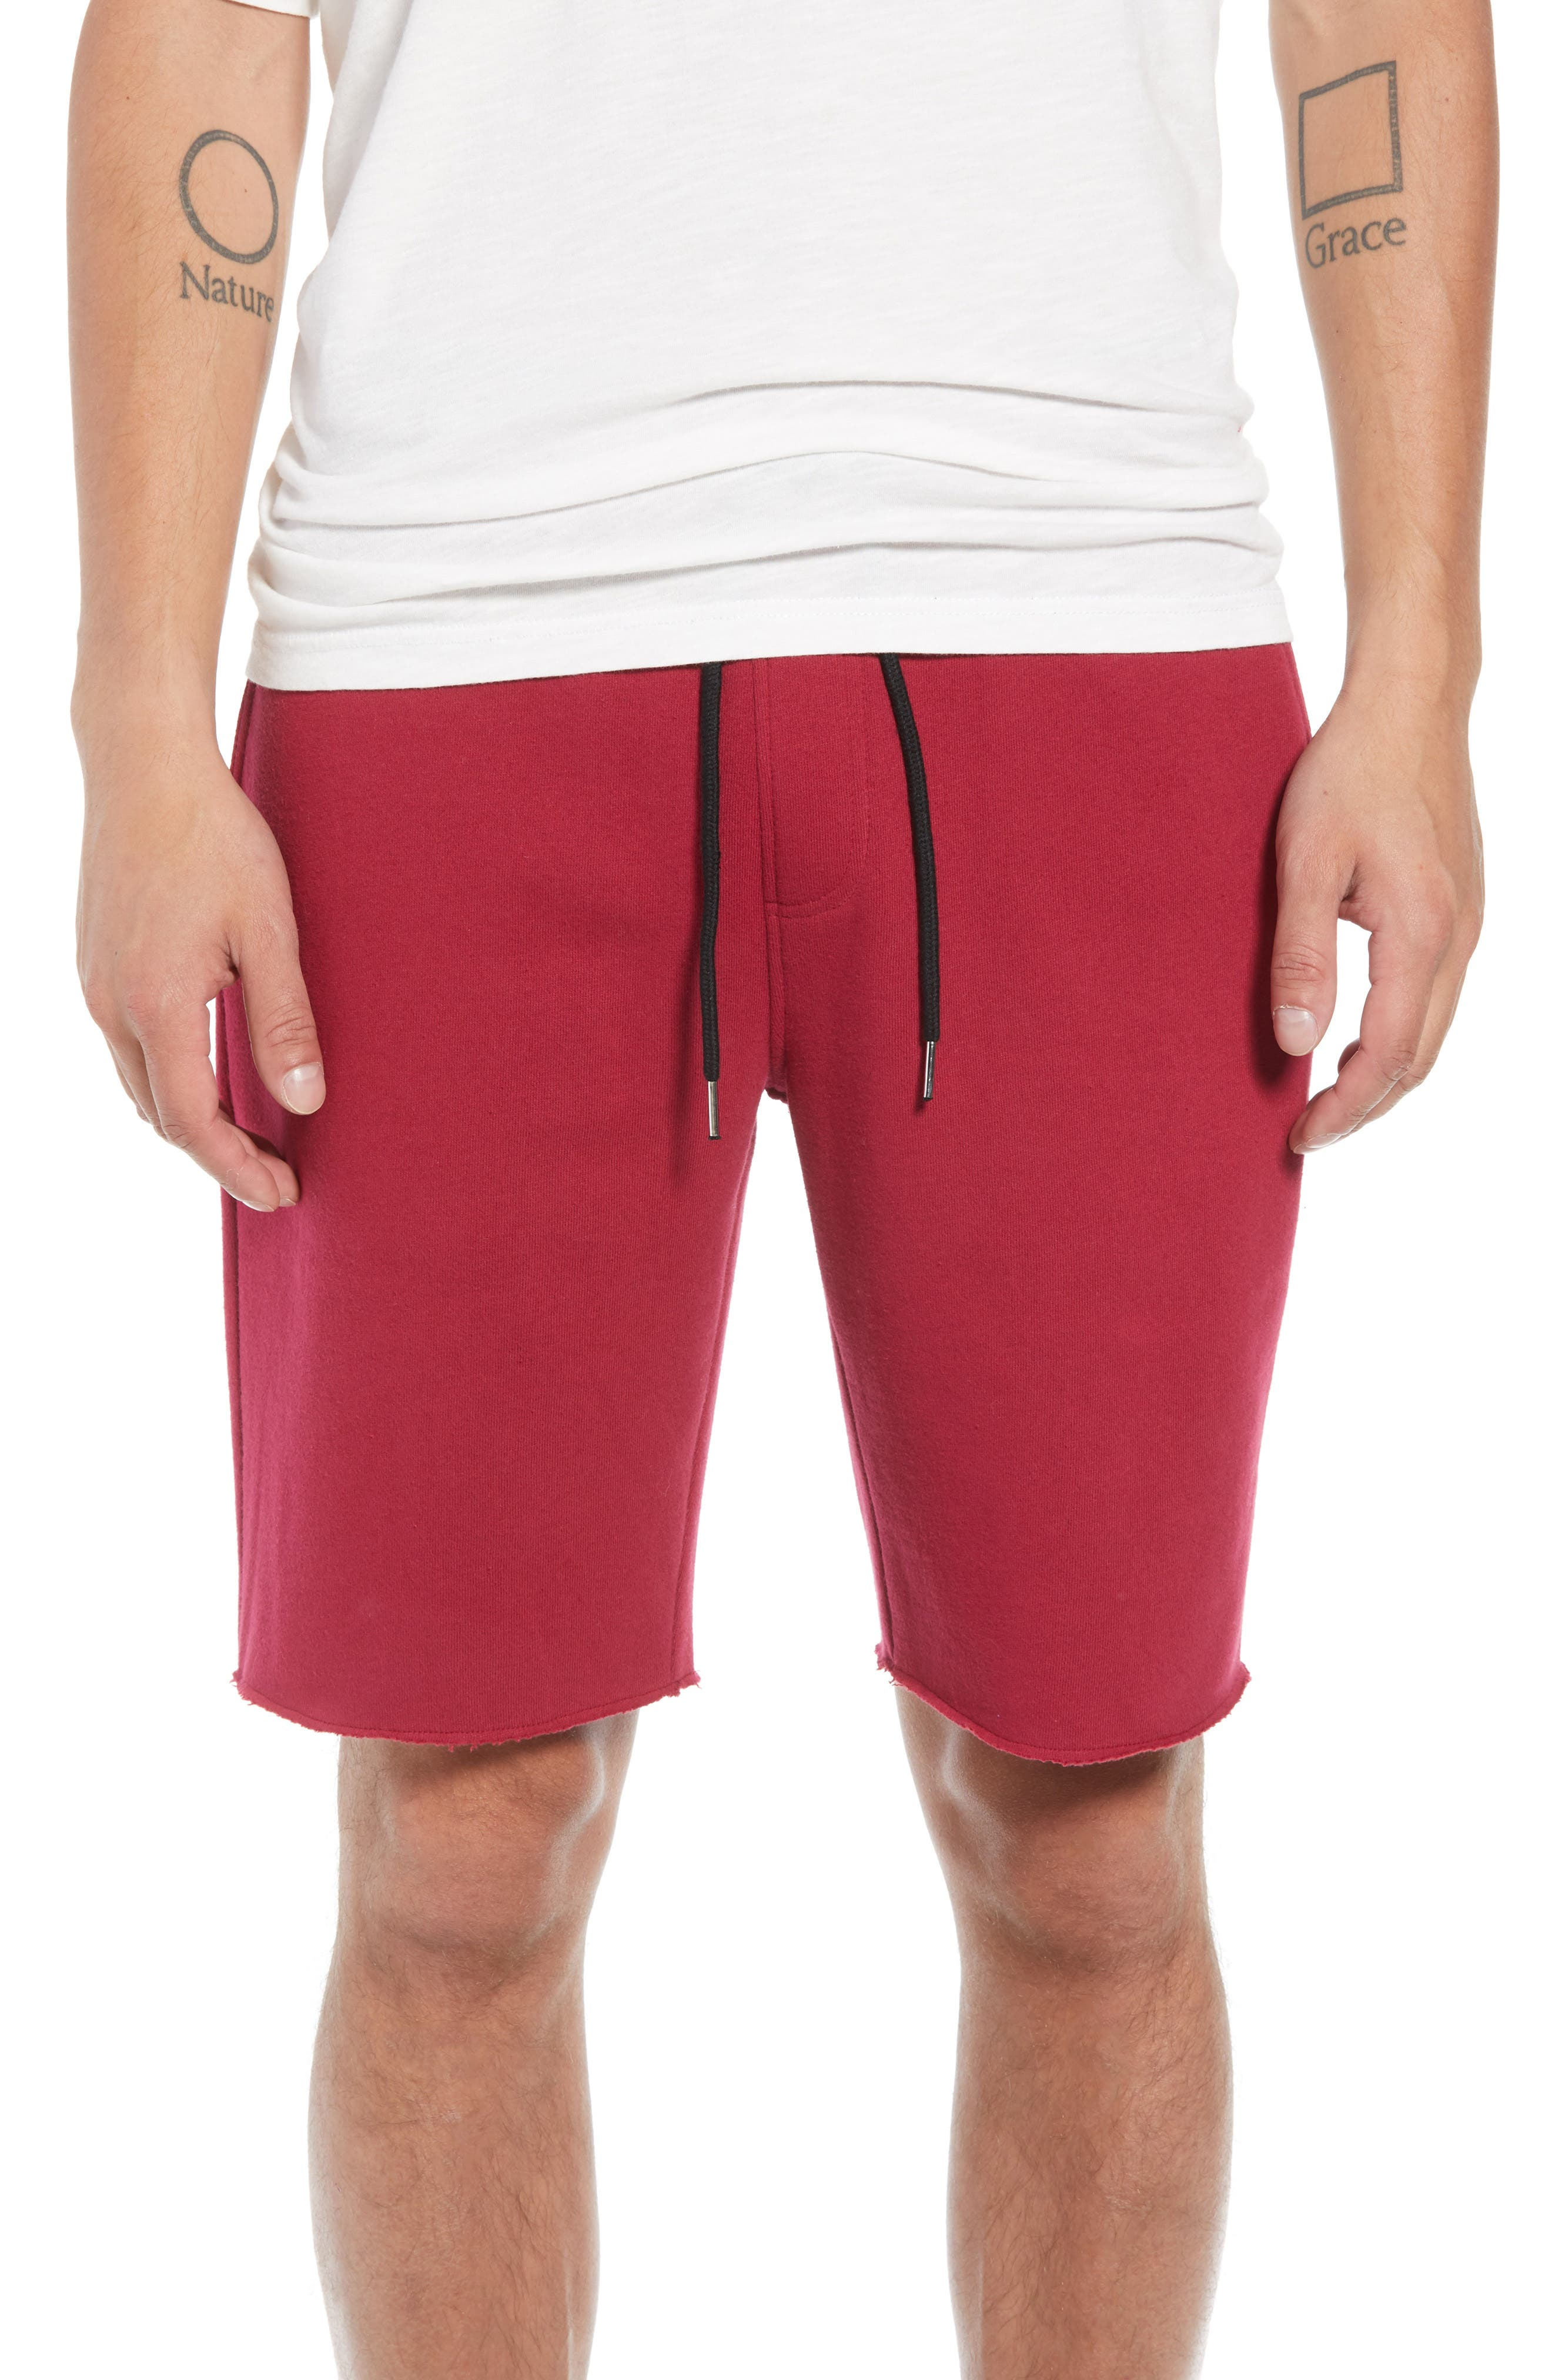 THE RAIL,                             Fleece Shorts,                             Main thumbnail 1, color,                             601